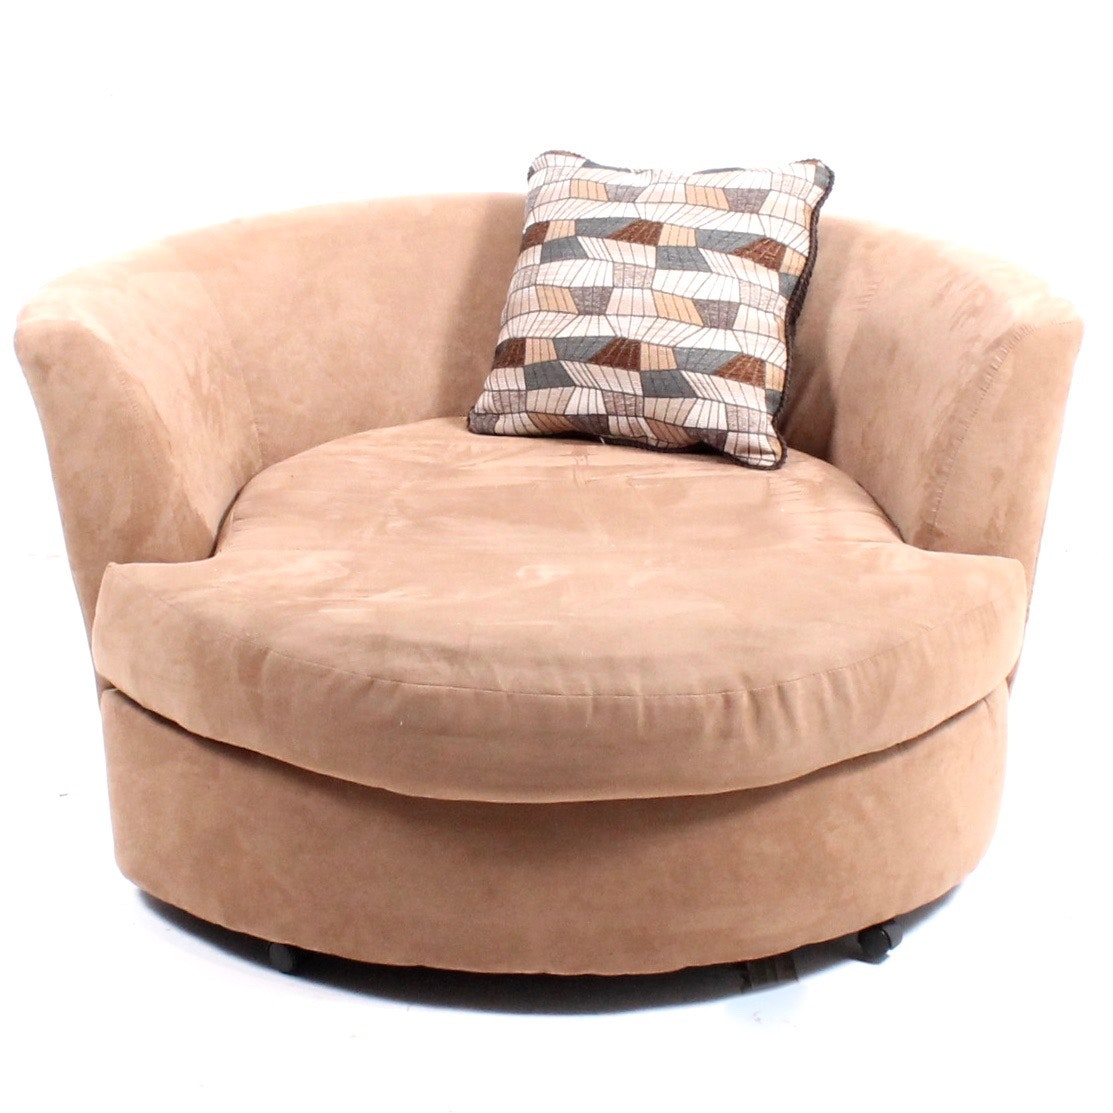 Oversize Micro-Suede Lounge Chair